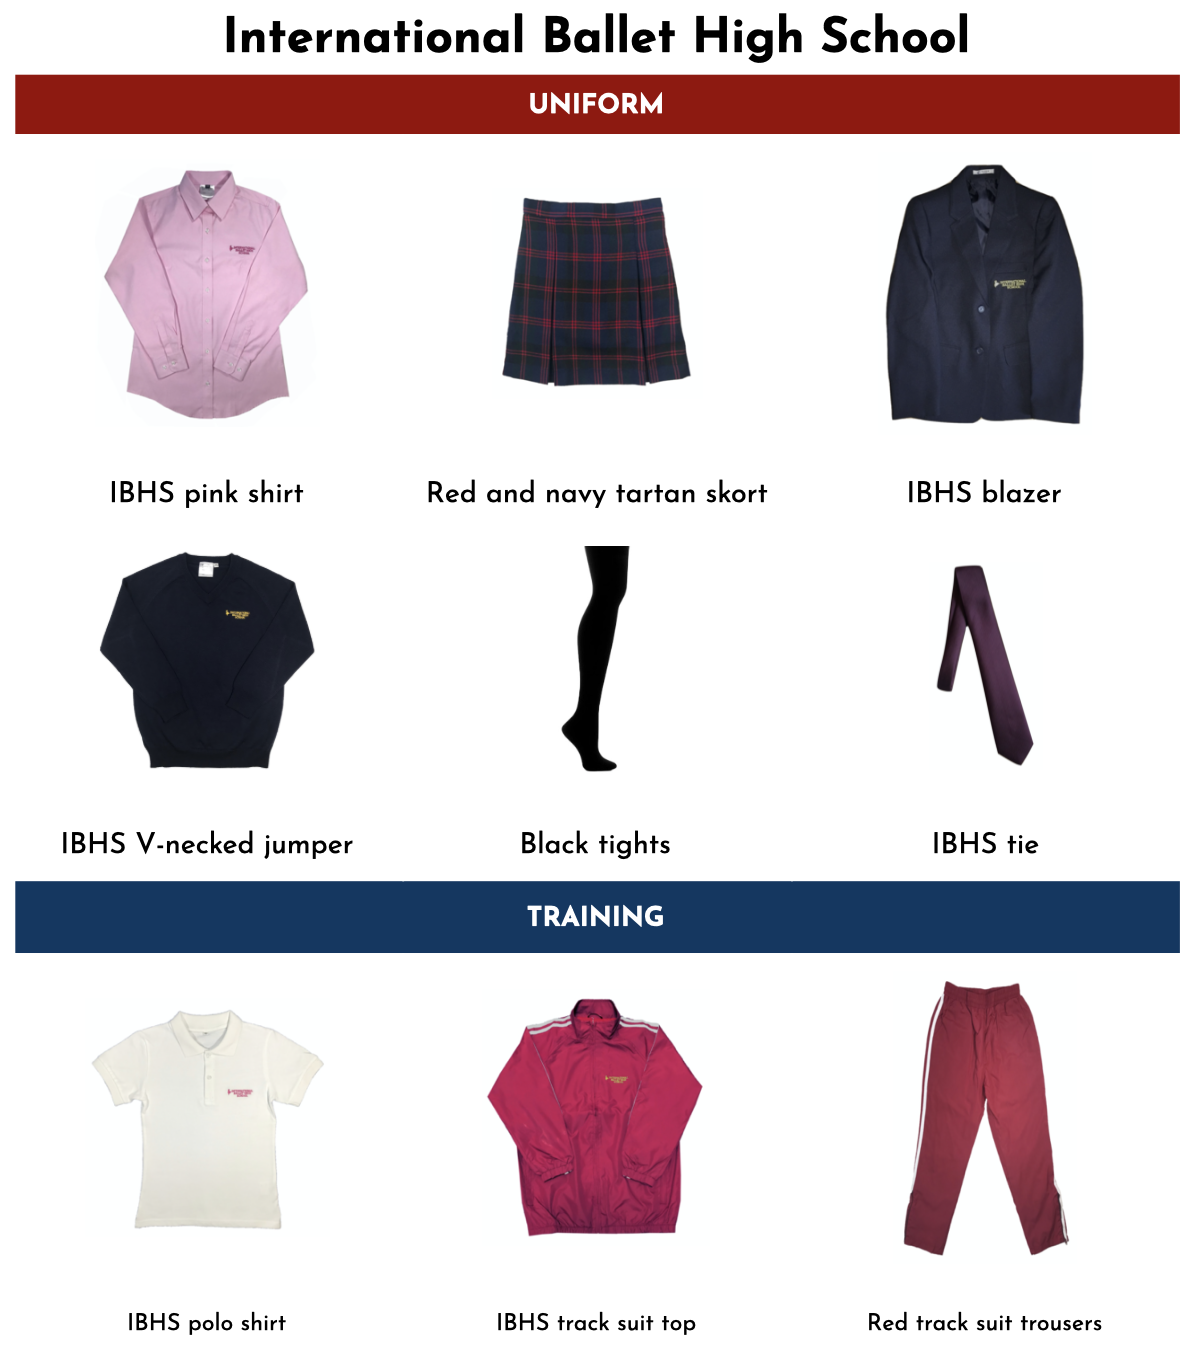 ibhs-uniform-guide-2020.png